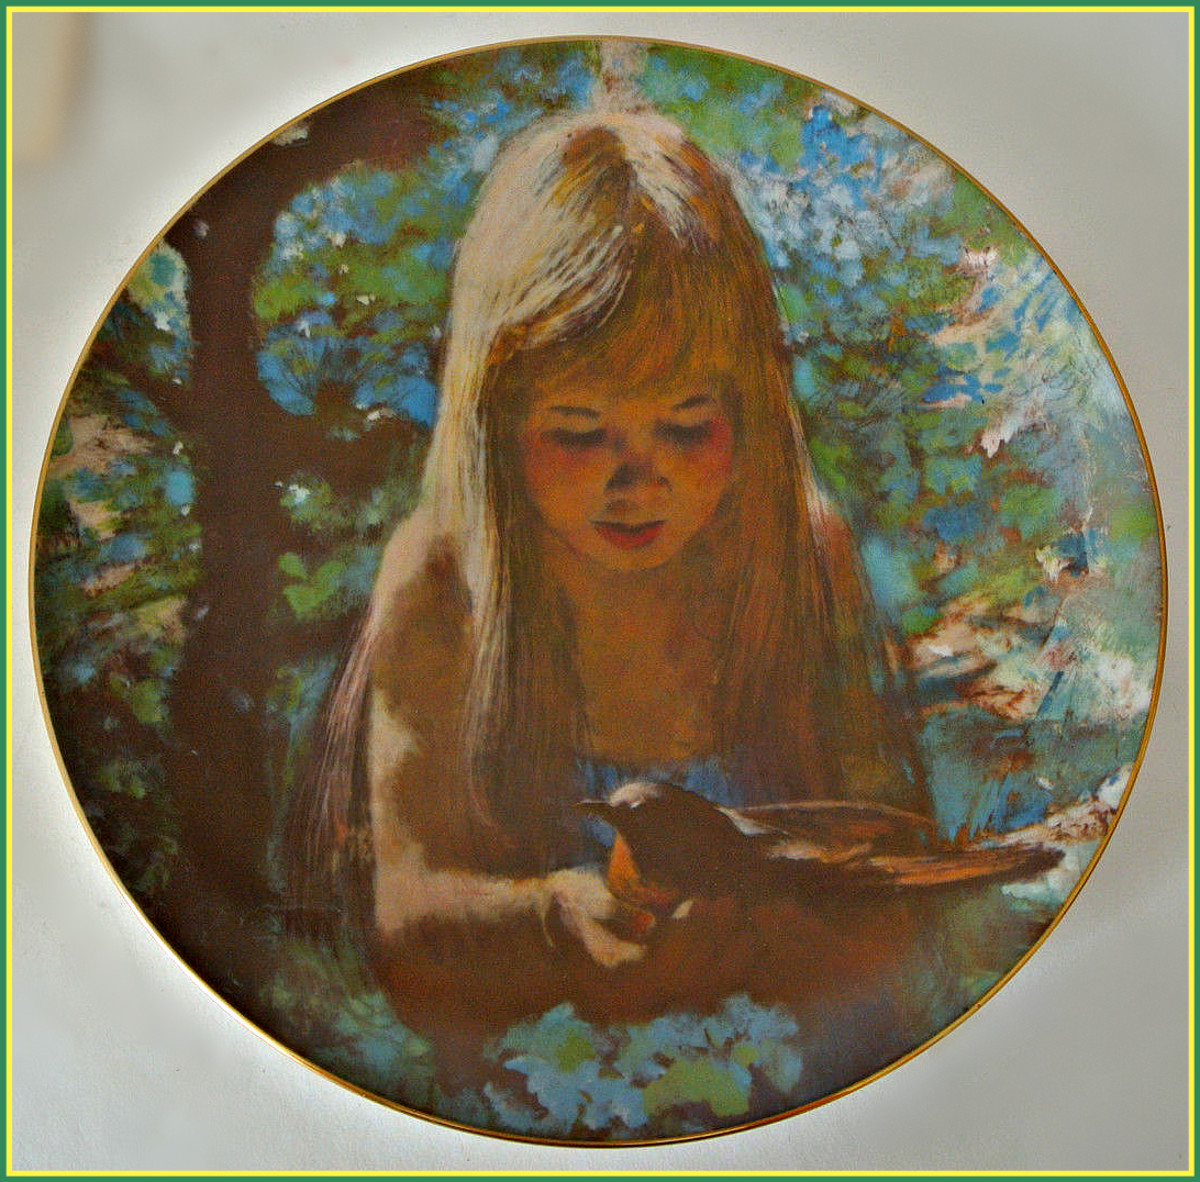 "Viletta & Artist Thornton Utz 1980 DAWN Precious Moments Collection Plate. Made by Viletta China & artist Thornton Utz. This is the fifth issue in the Precious moments Collection, titled DAWN, dated 1980.  Plate is 8 3/8"" in diameter."